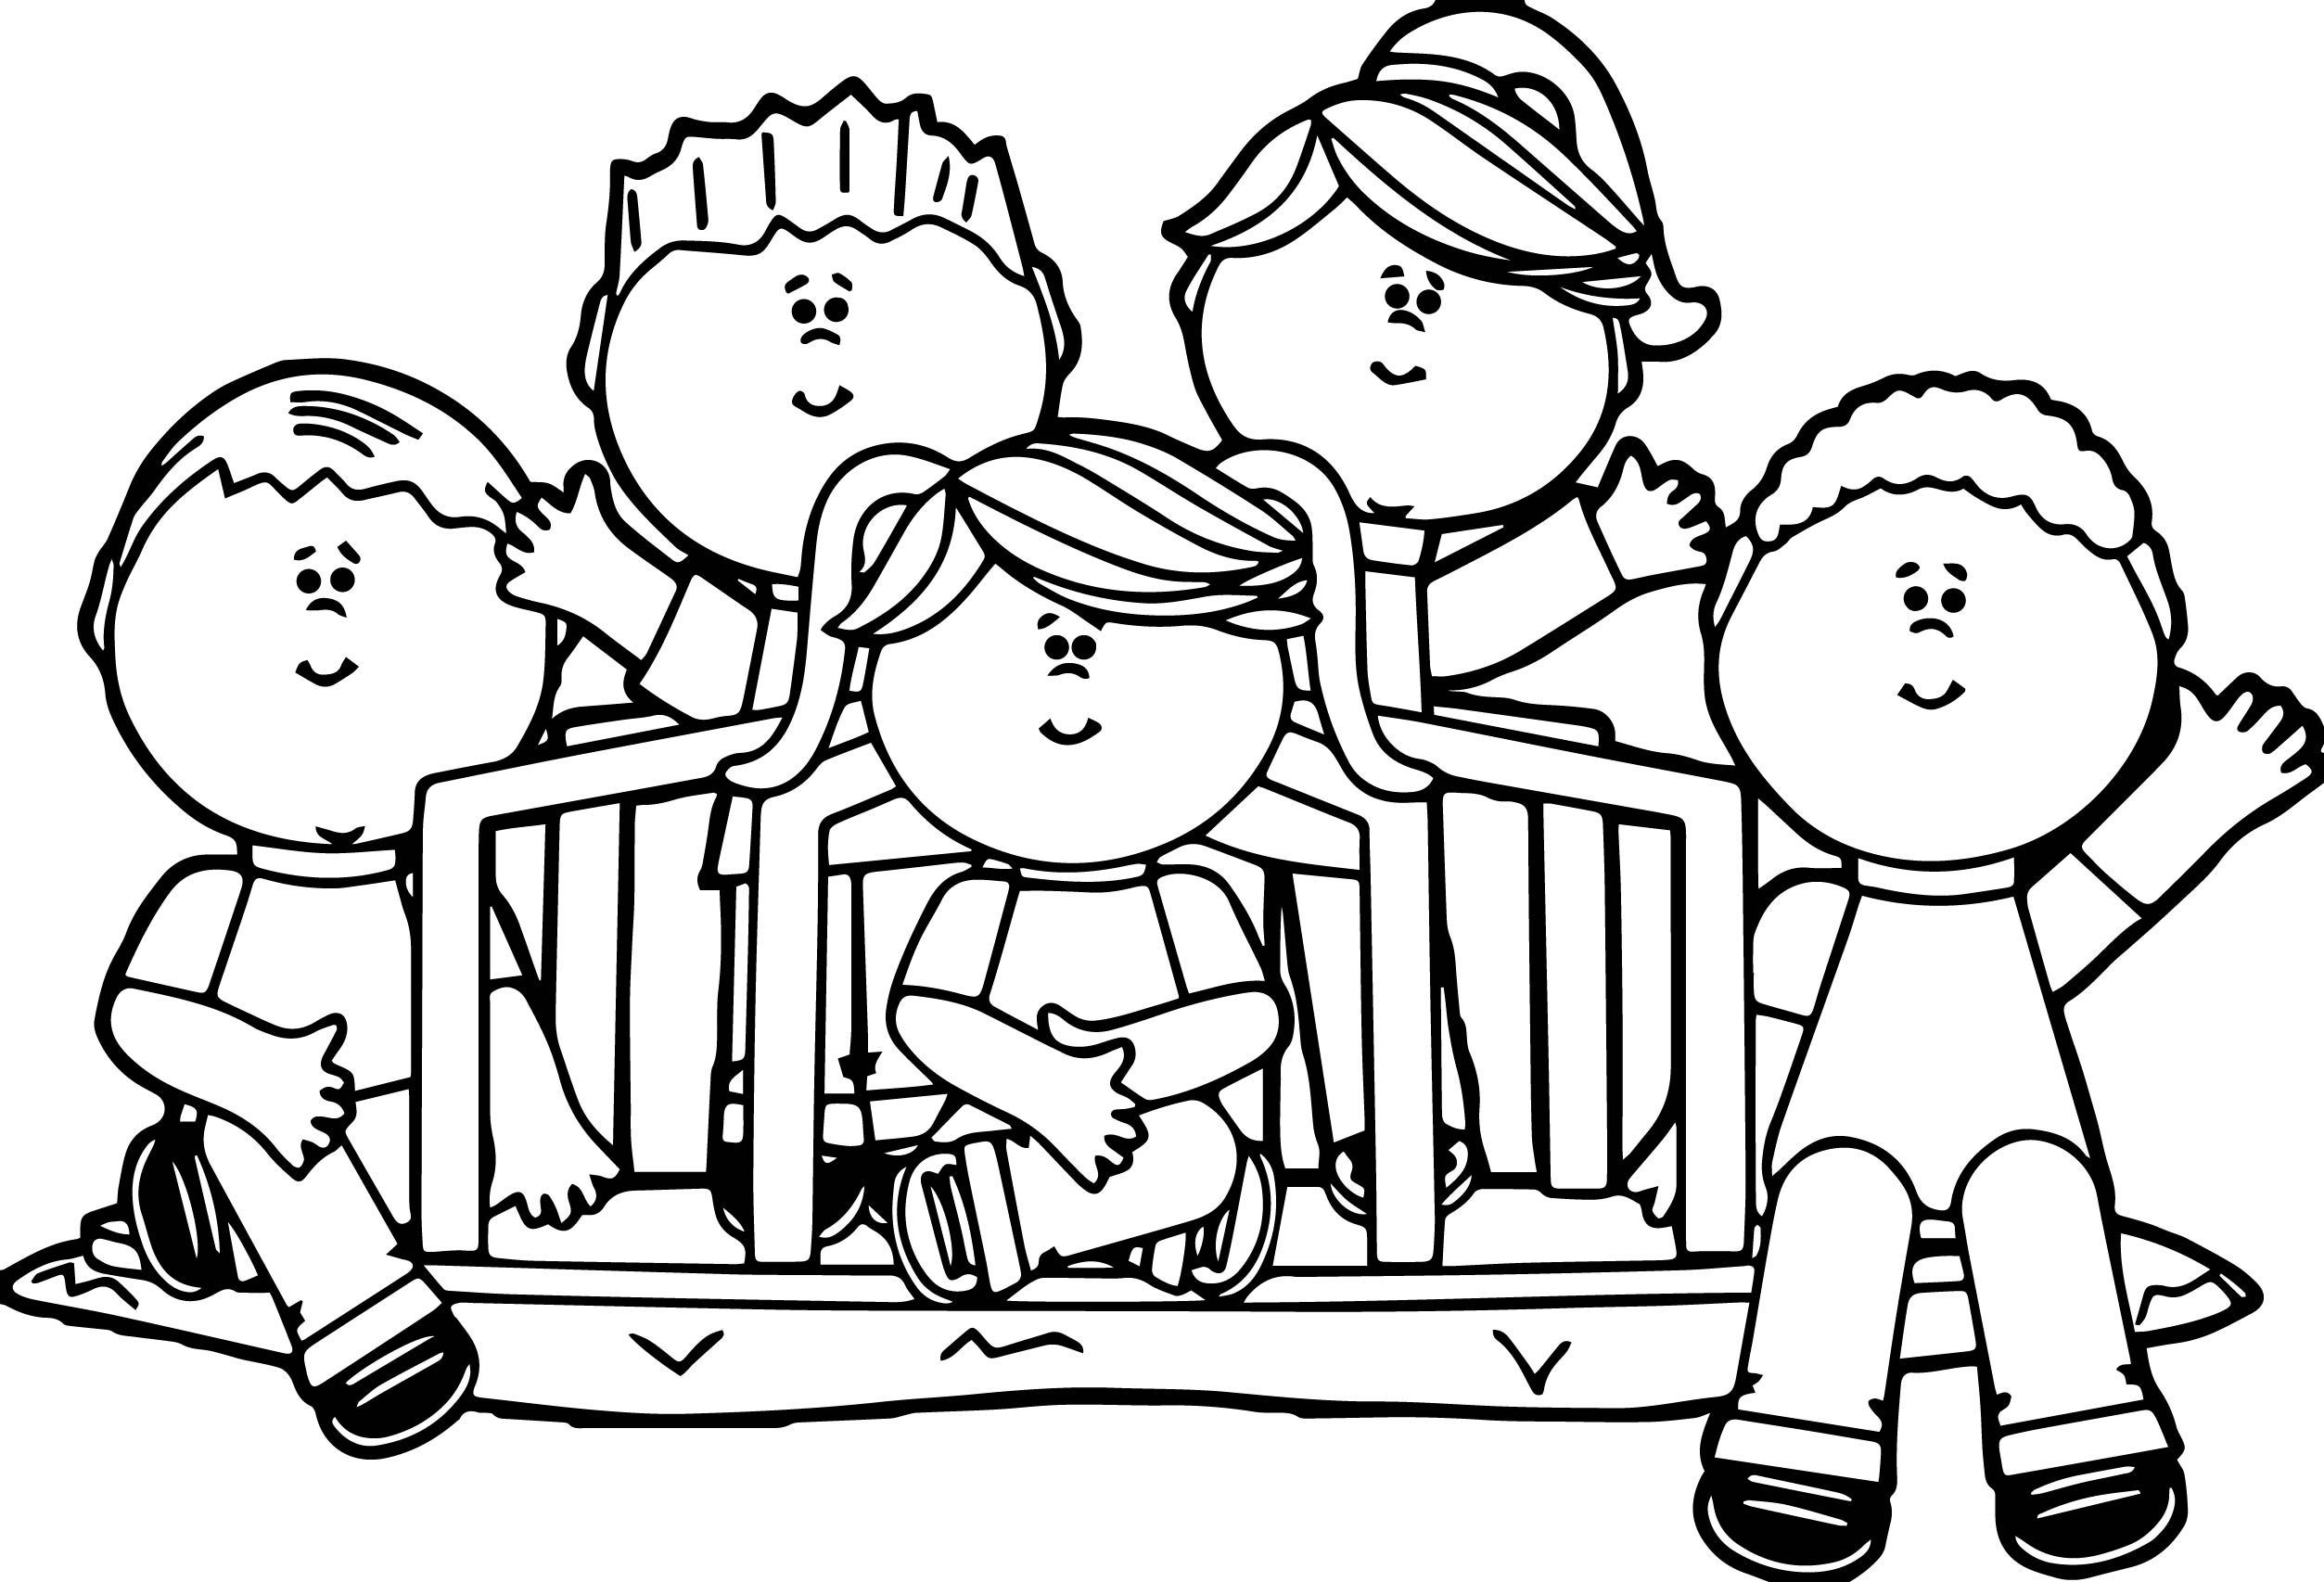 Kids In Park Coloring Page